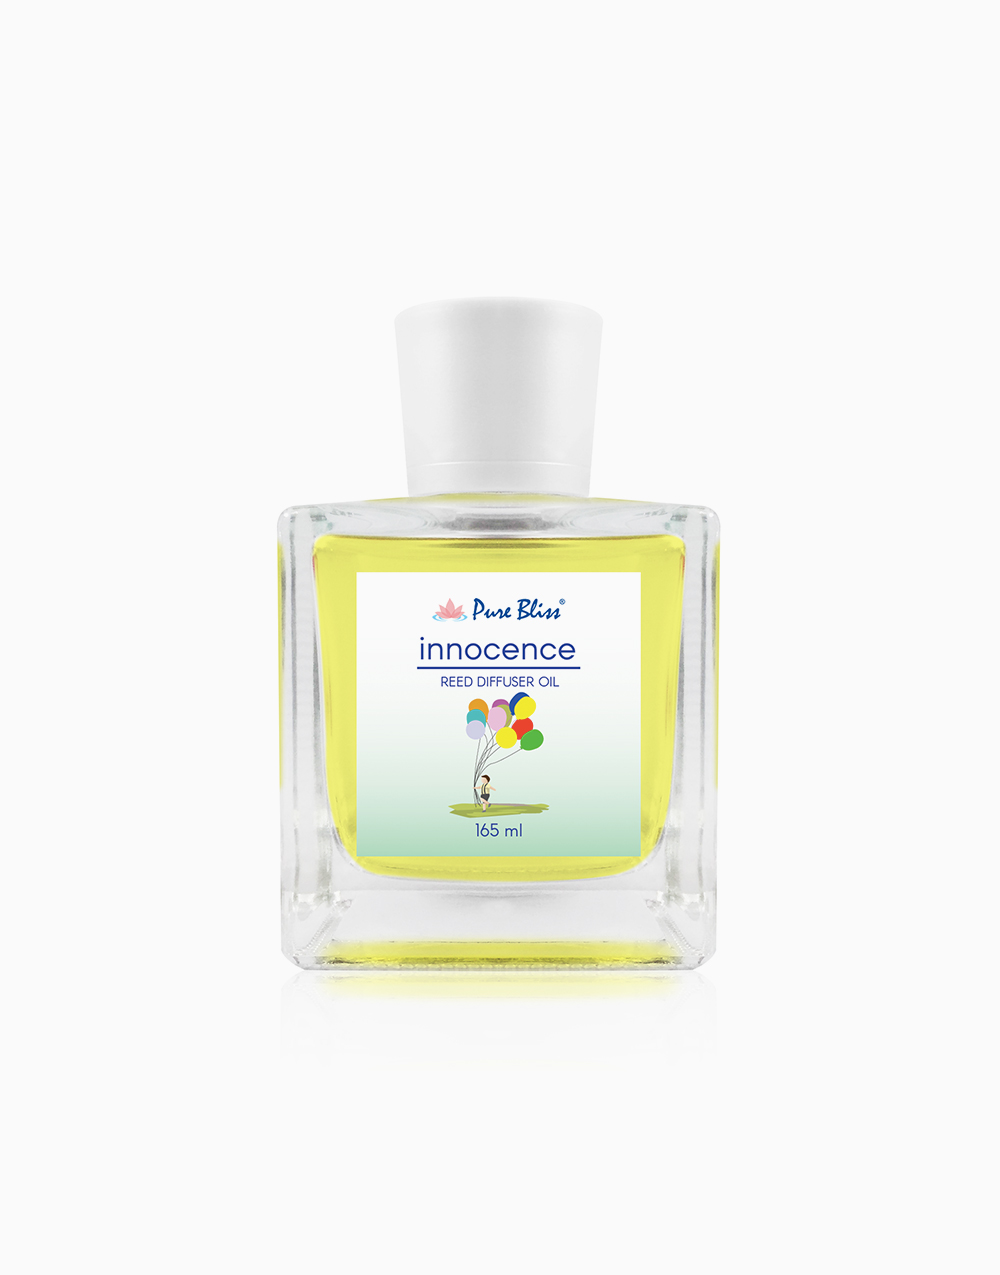 Innocence Reed Diffuser Oil (165ml) by Pure Bliss